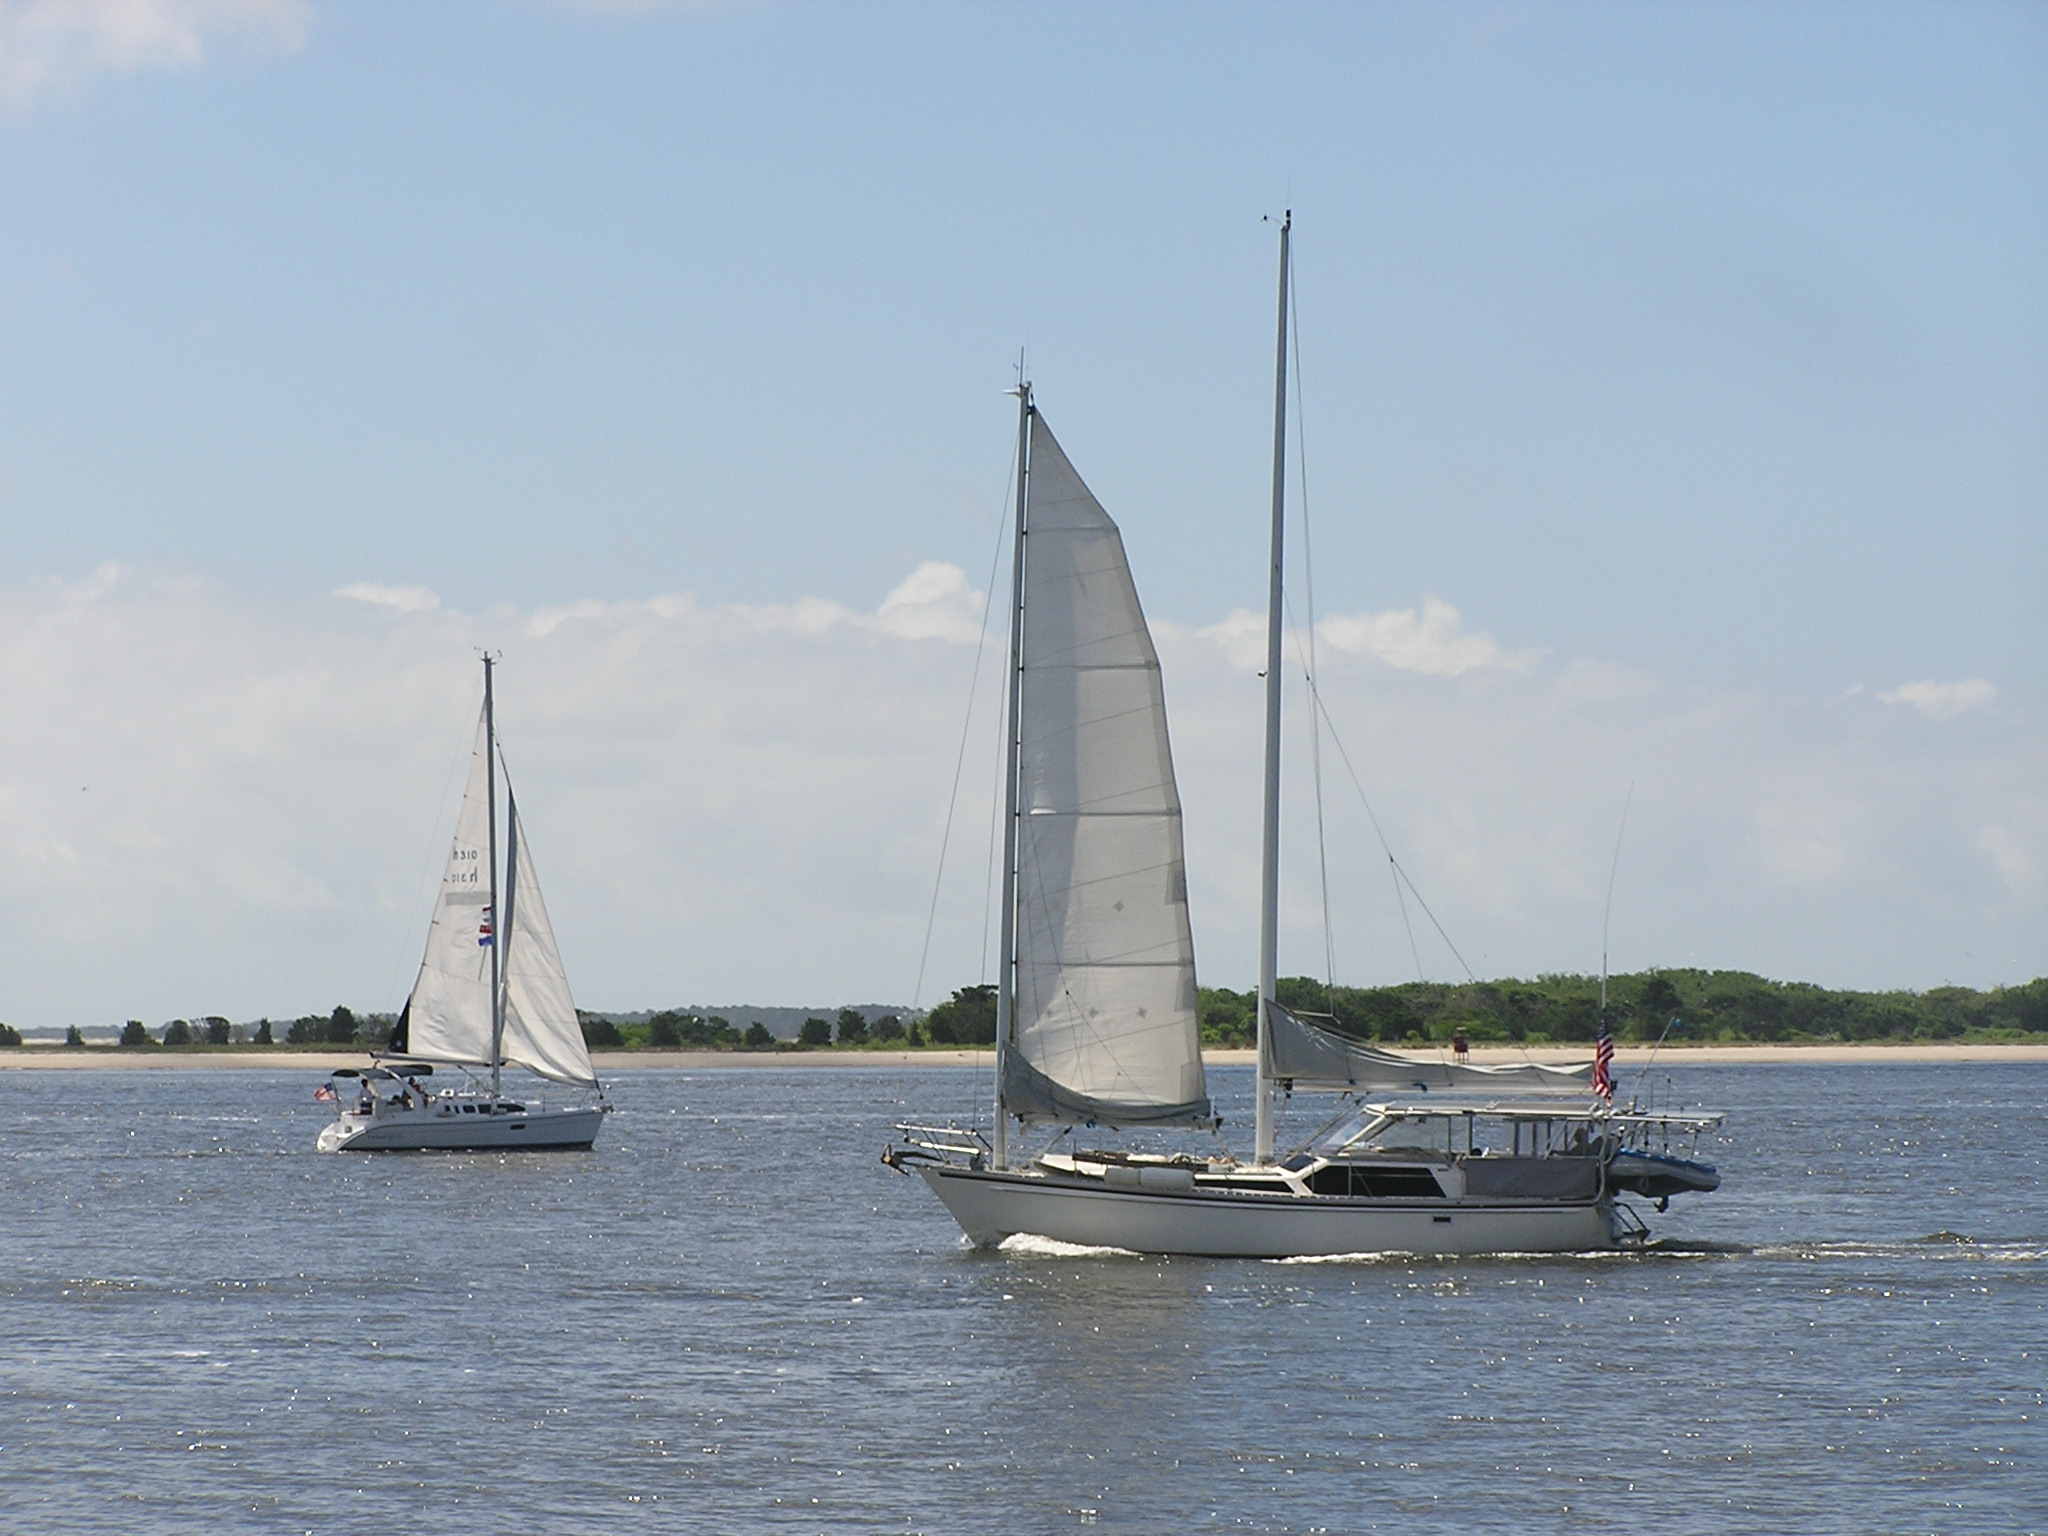 Sailboats in Cape Fear River